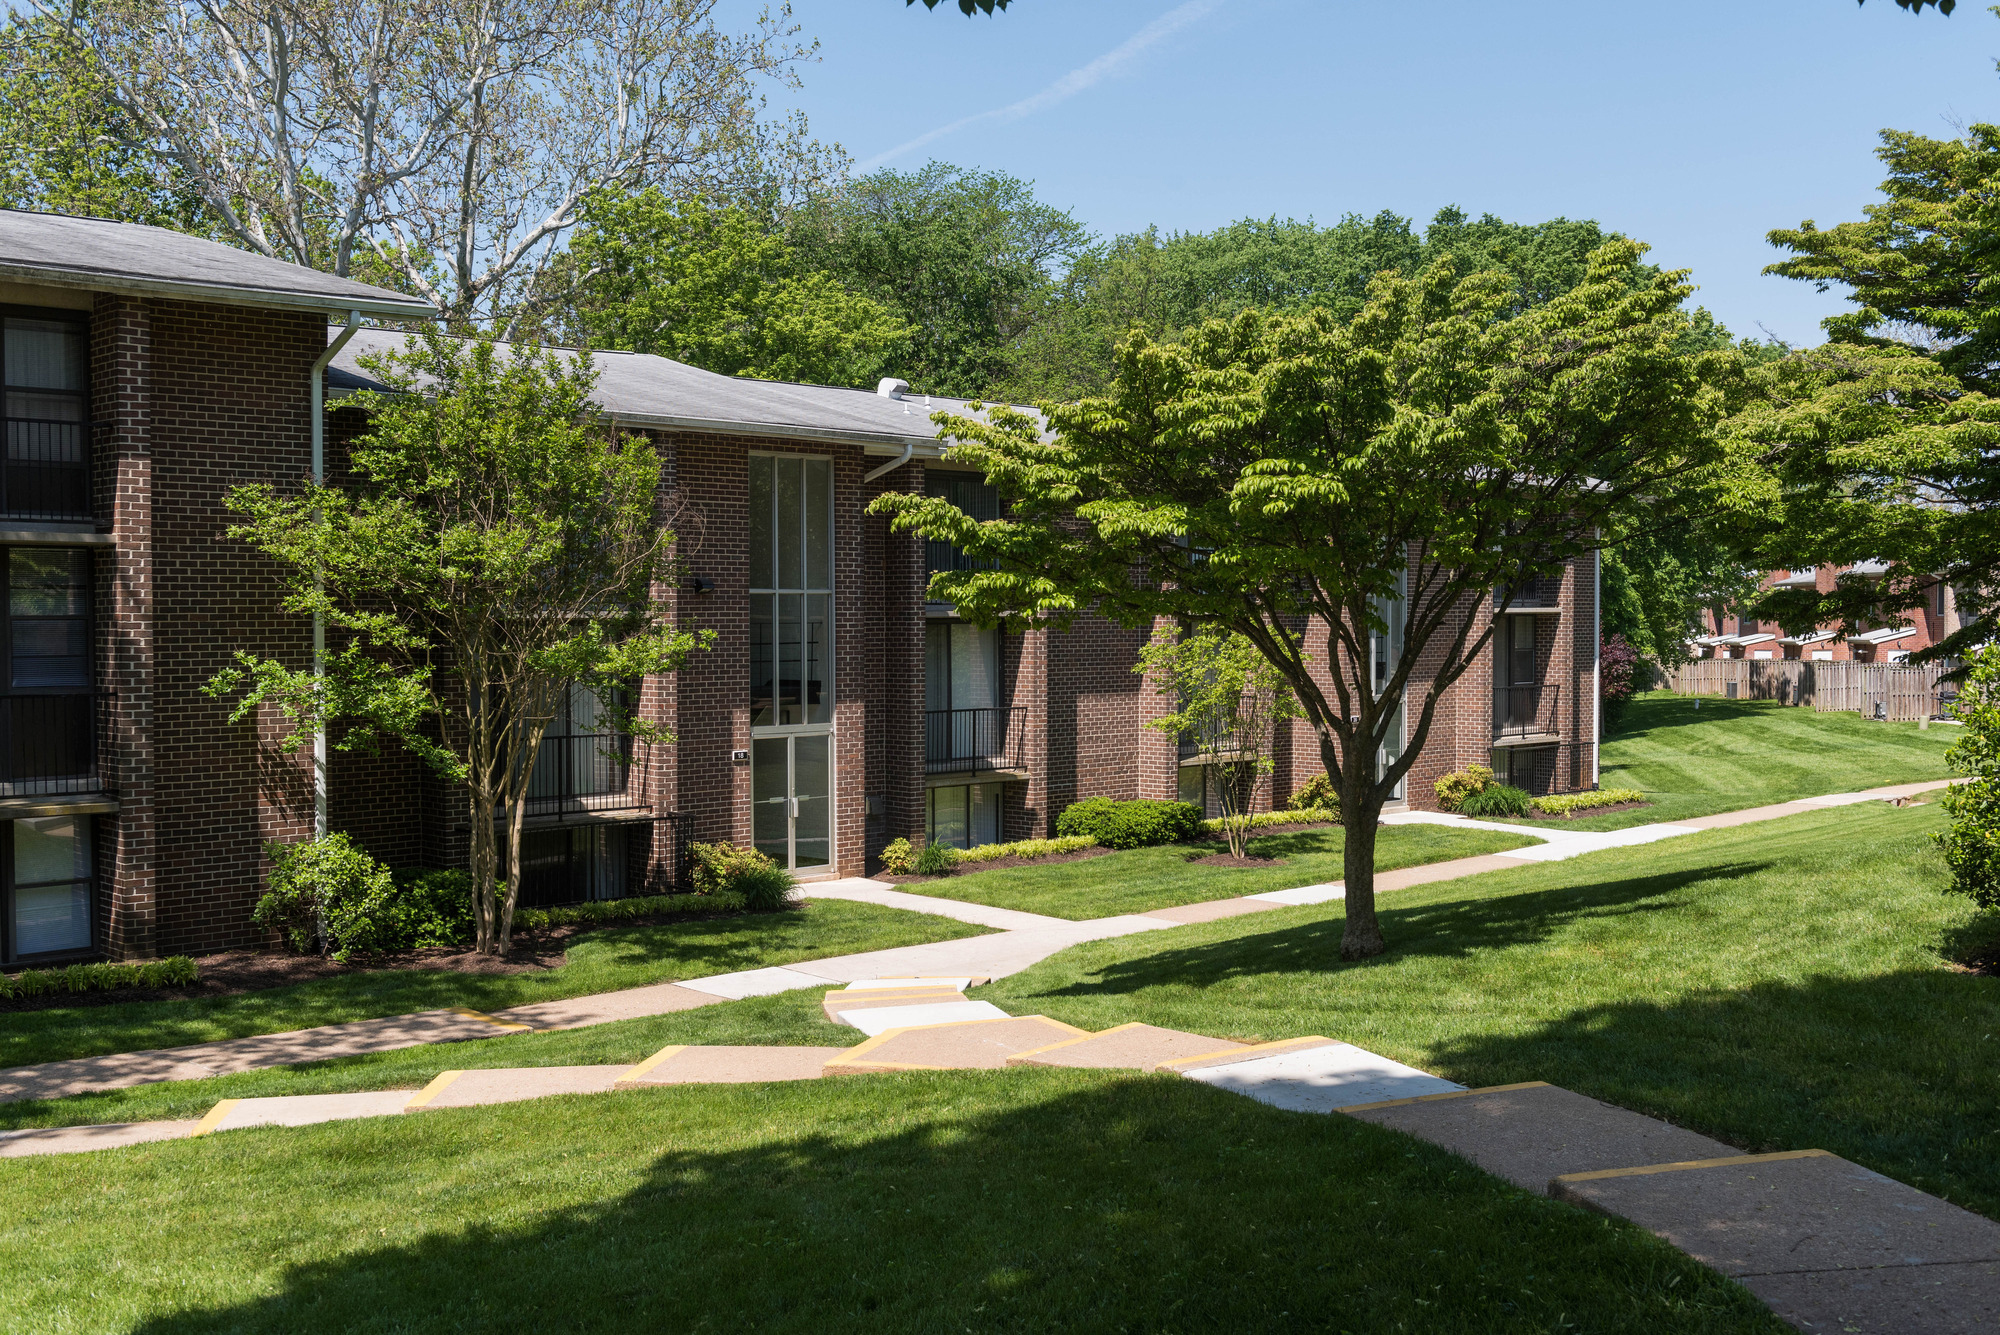 Hampton Manor Apartments & Townhomes in Cockeysville, MD - Apartment Community